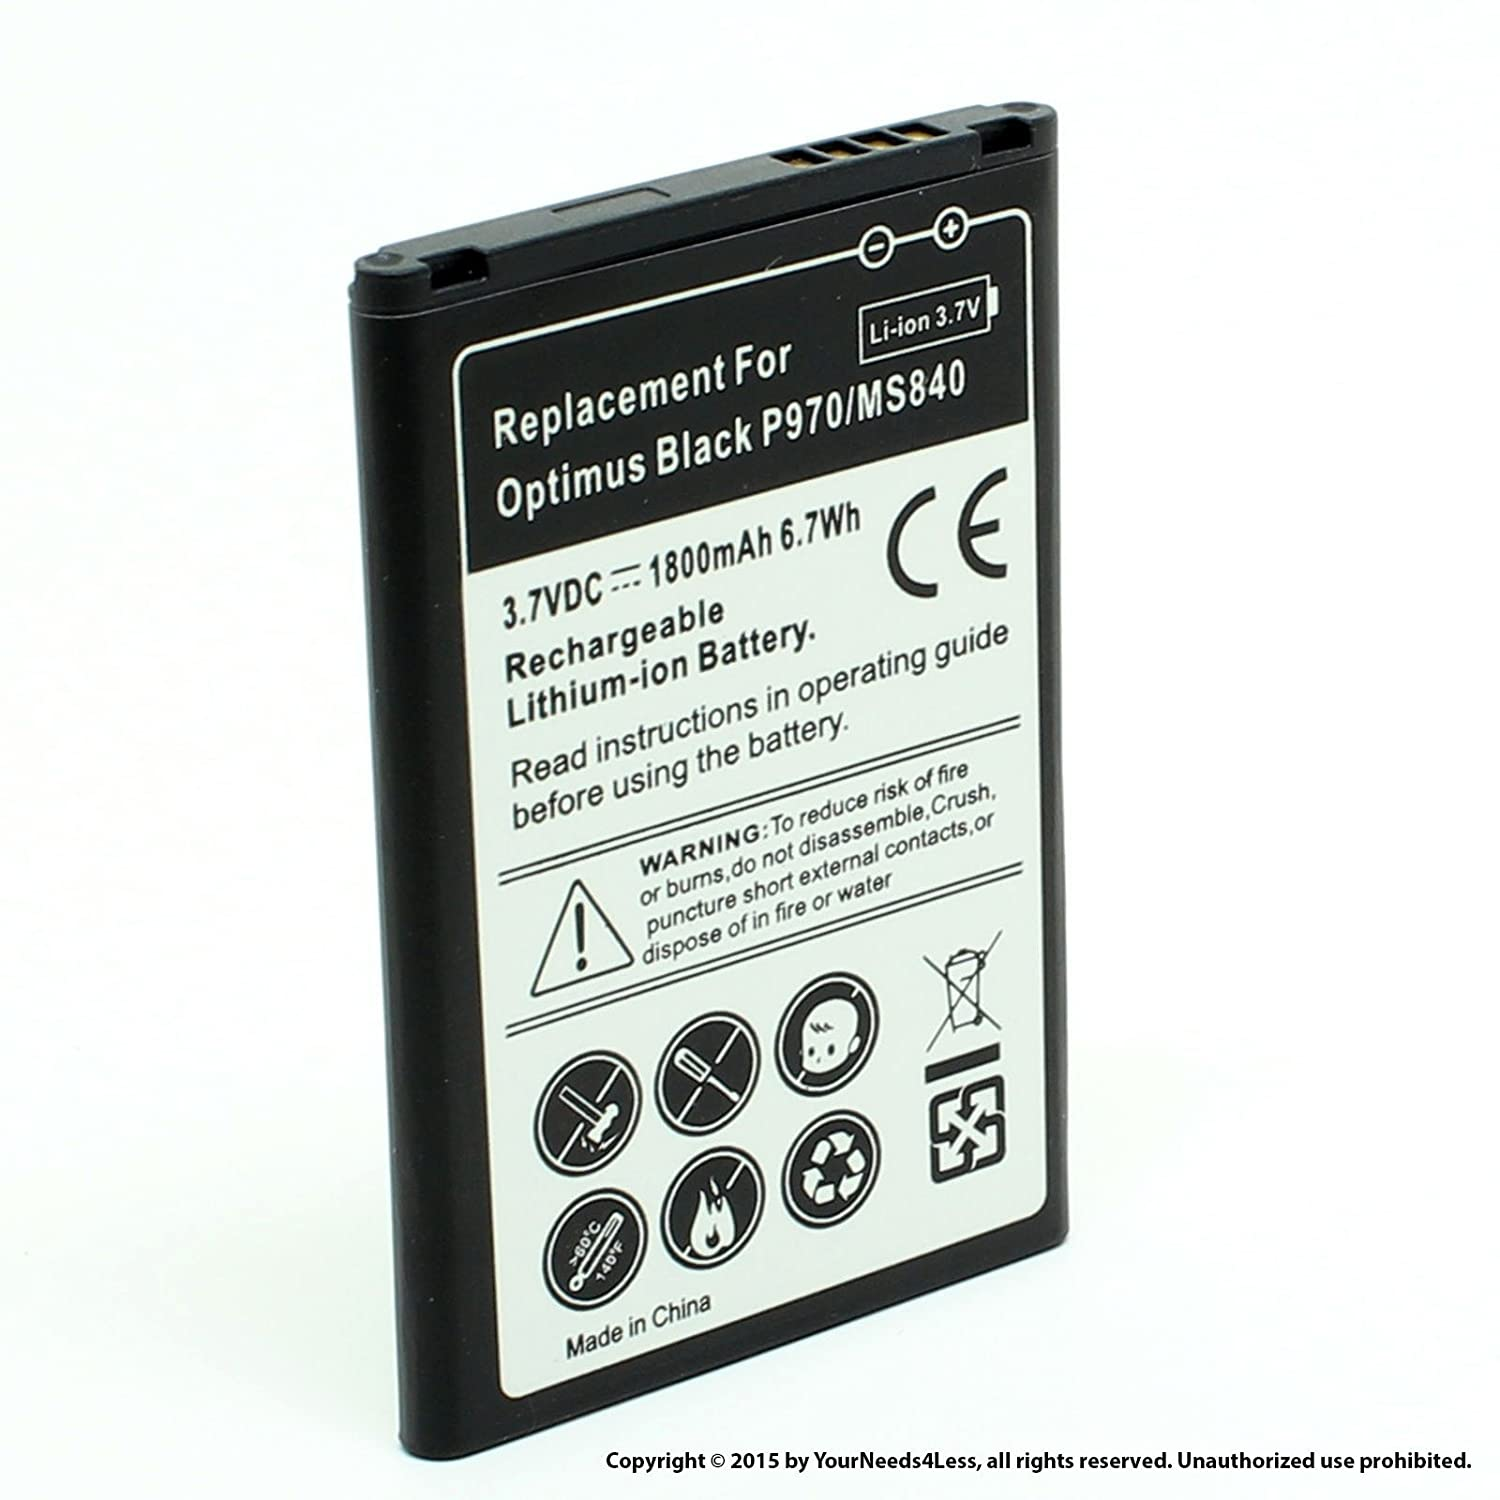 Amazon.com: YN4L 1800mAh Replacement Battery for LG Marquee LS855 ; P970 ;  Optimus Black ; MS840: Cell Phones & Accessories